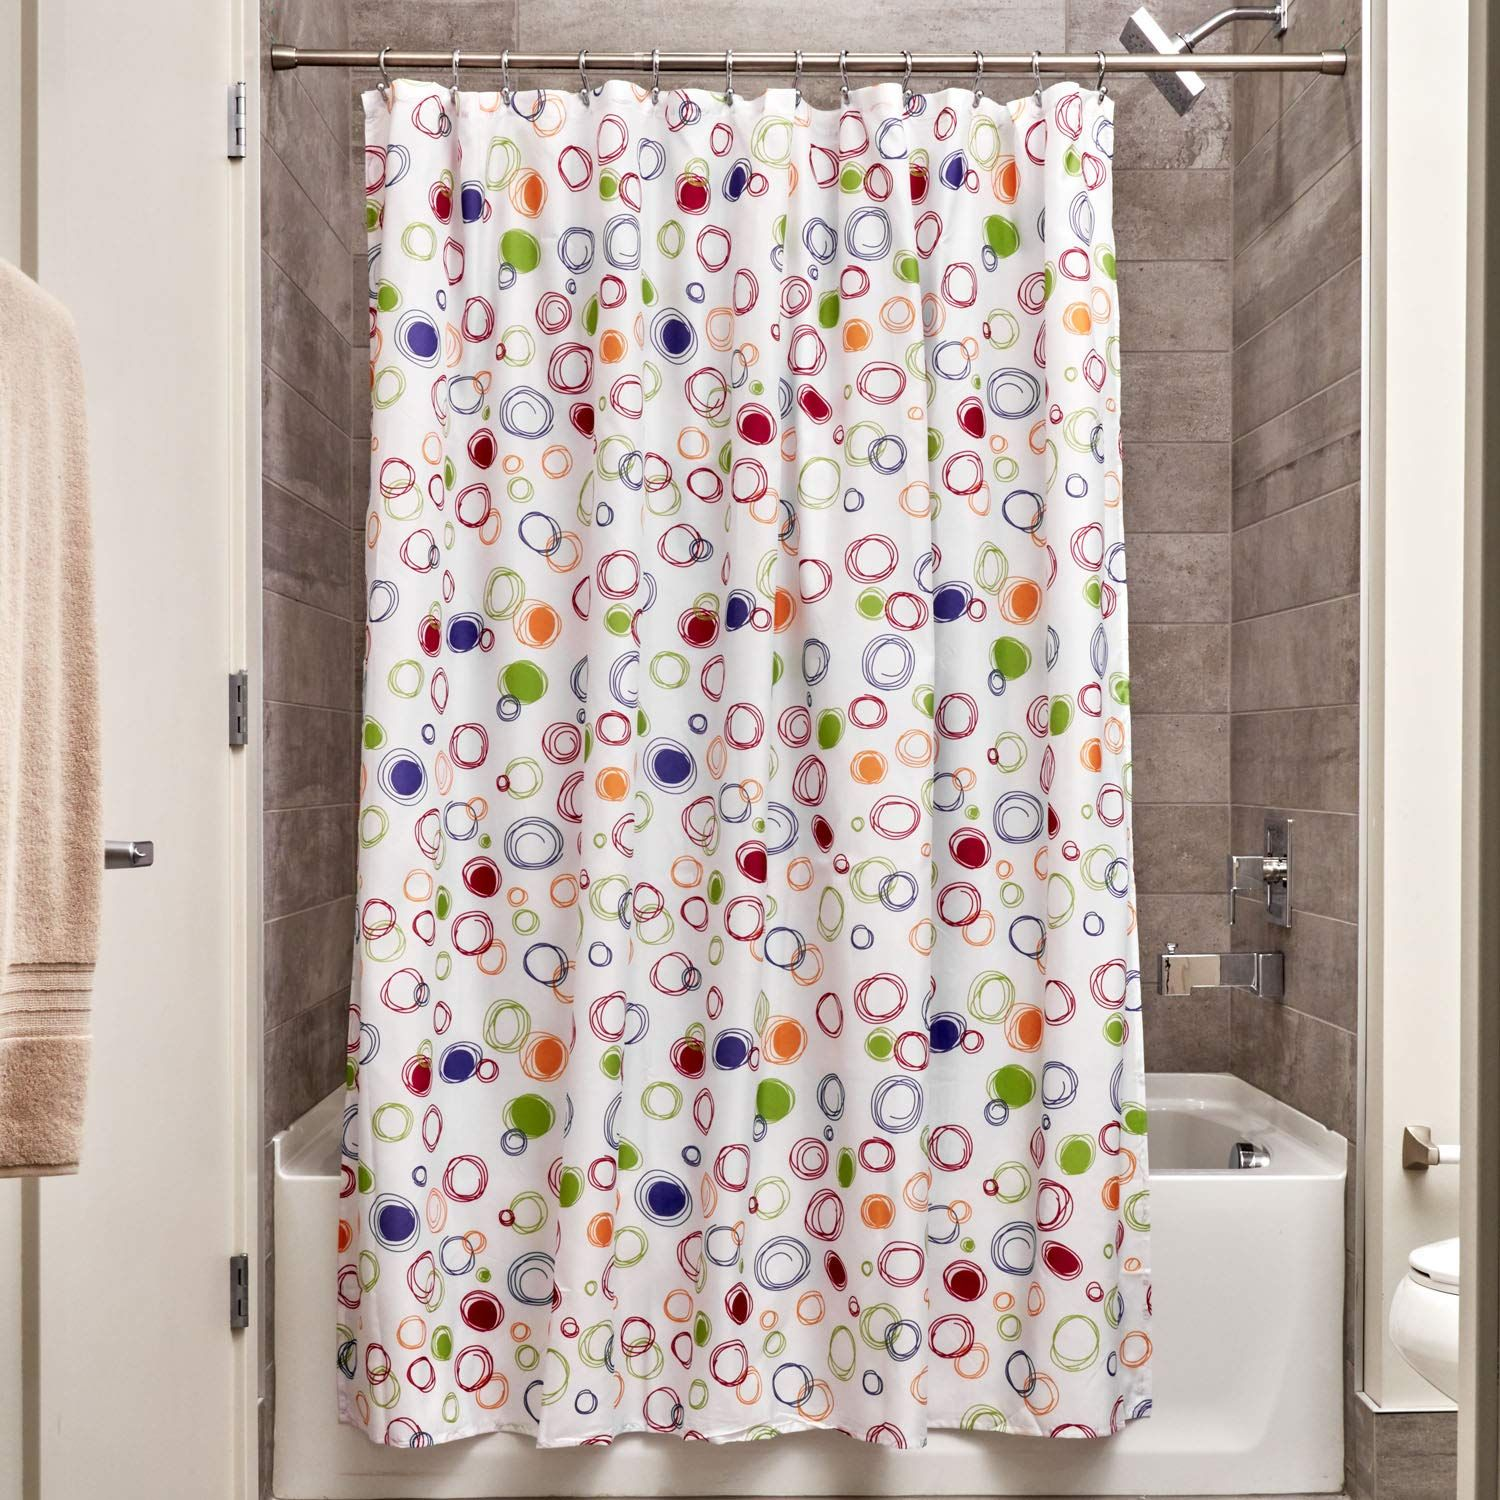 Interdesign Doodle Shower Curtain 72 Inch By 72 Inch Bright 72